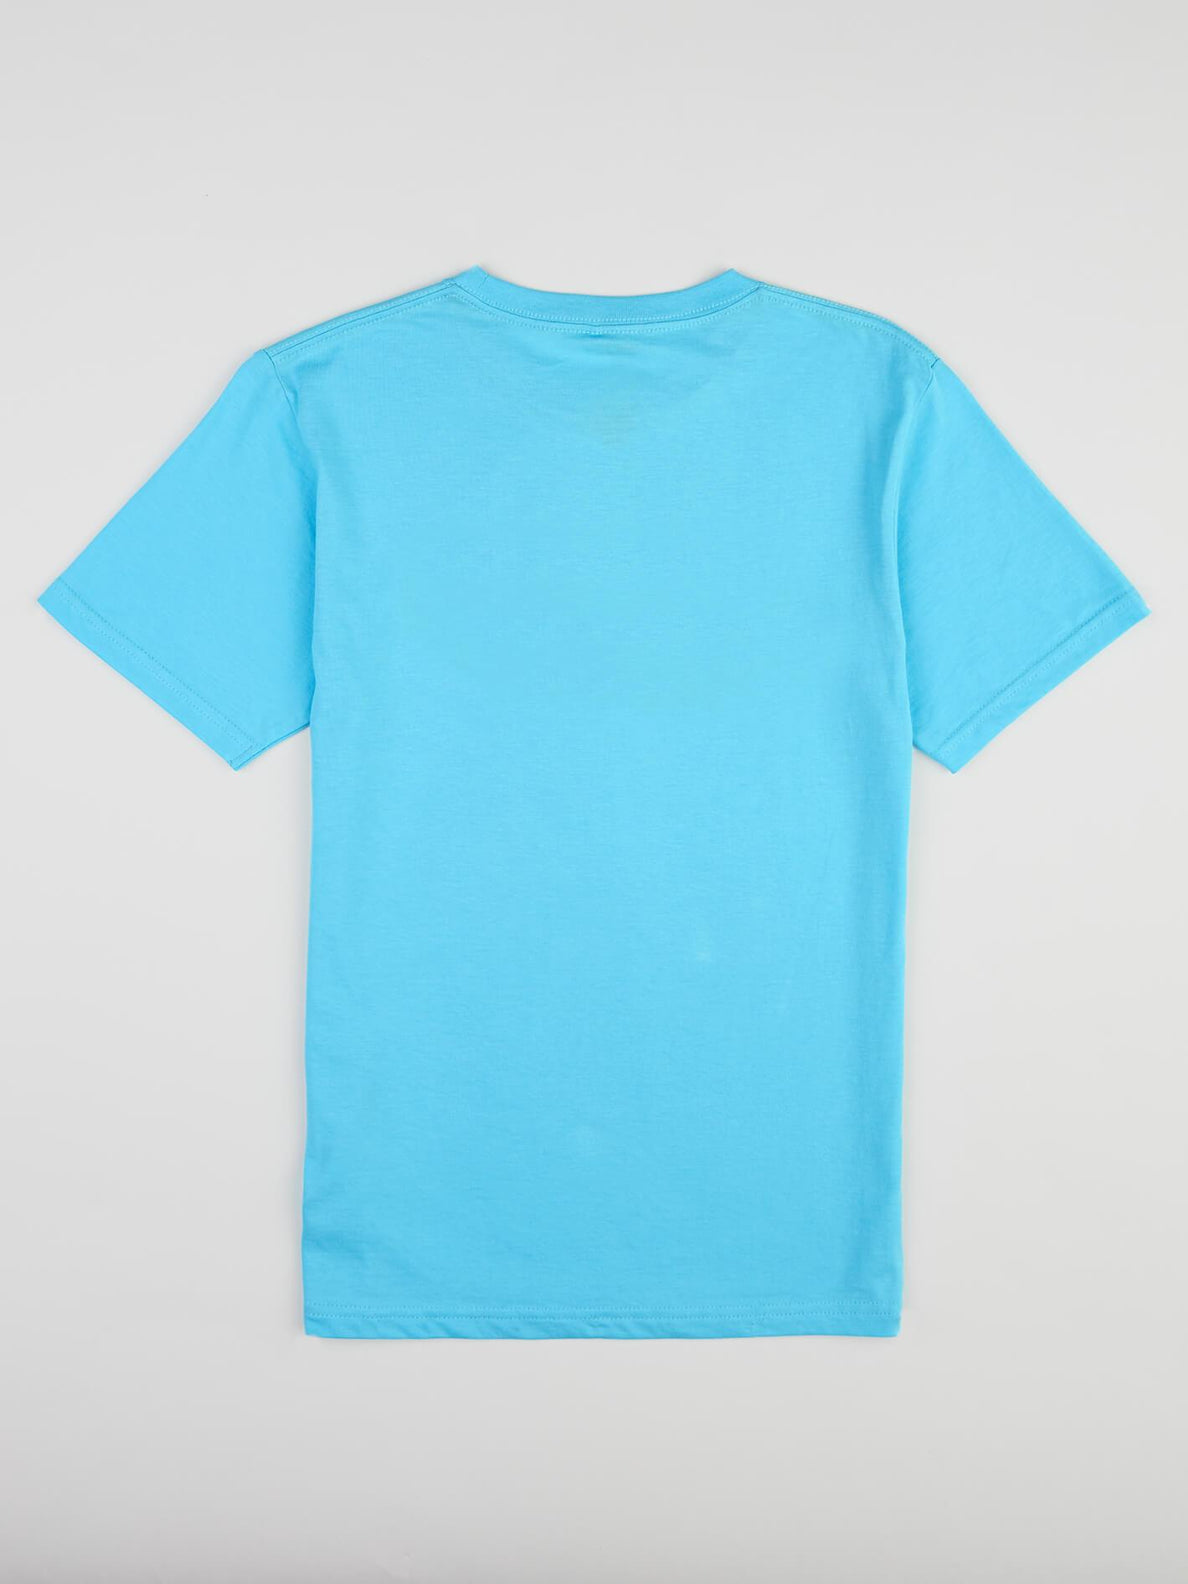 Big Boys Fracture Tee In Aqua, Back View